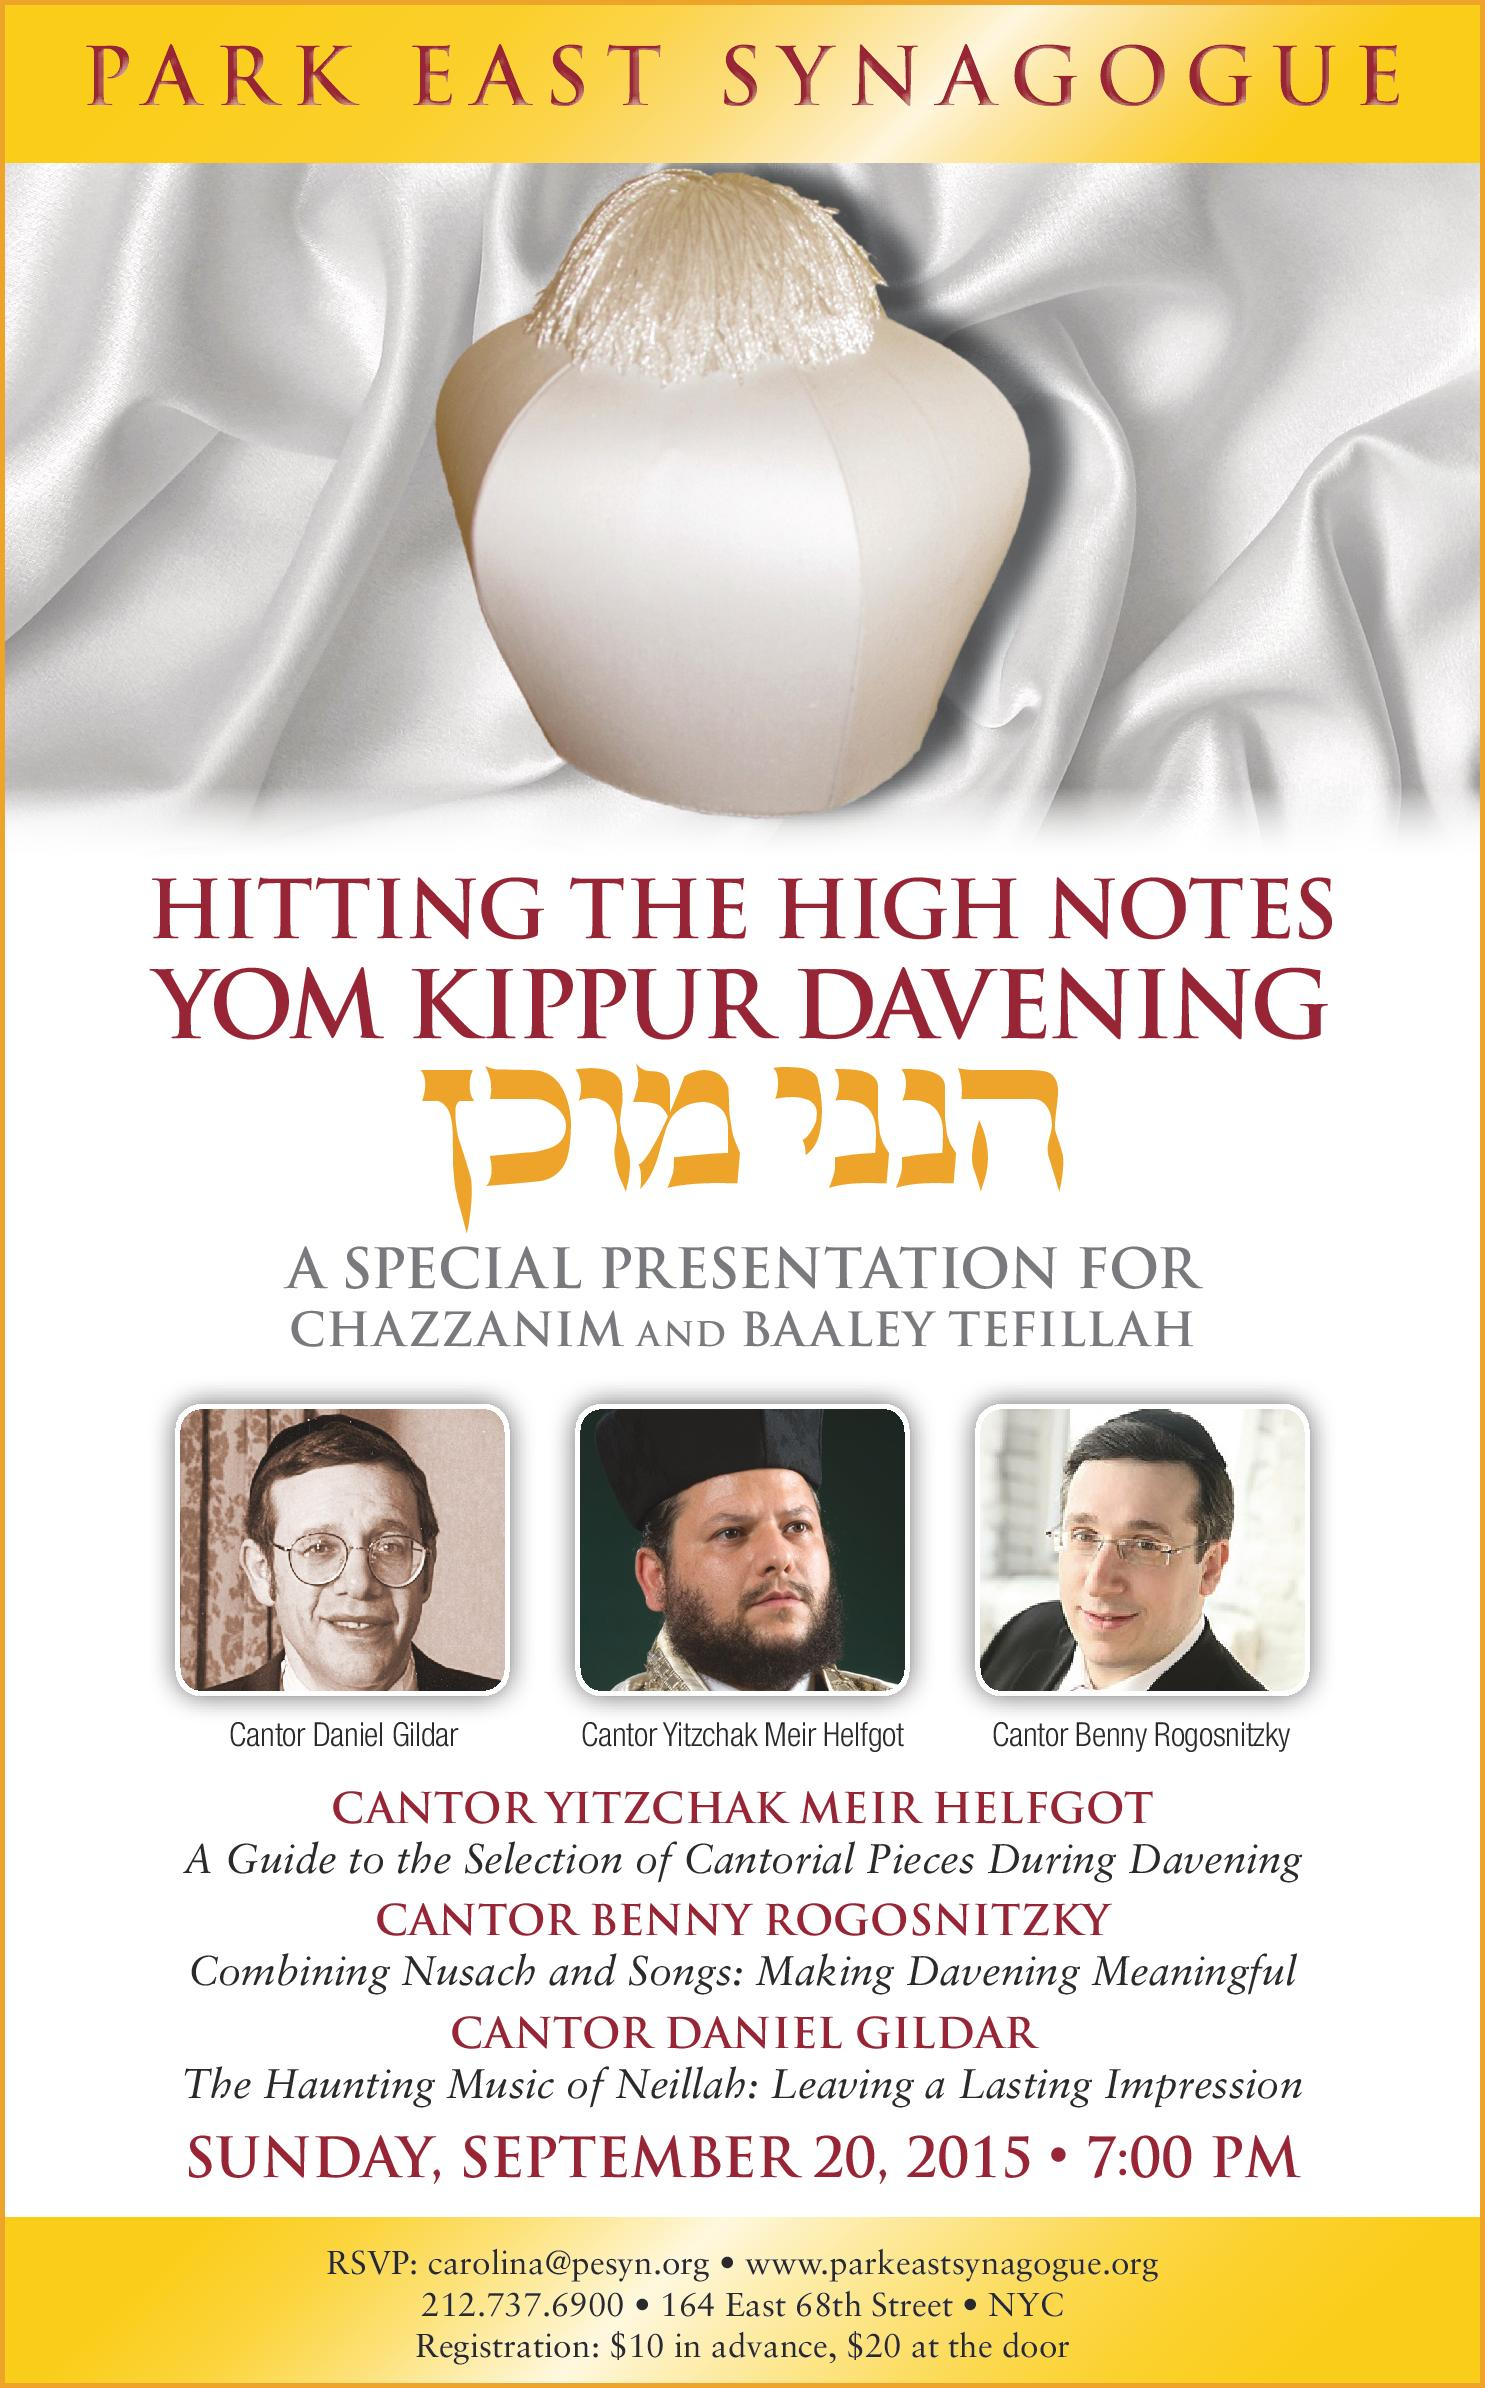 Hitting the High Notes - Yom Kippur Davening